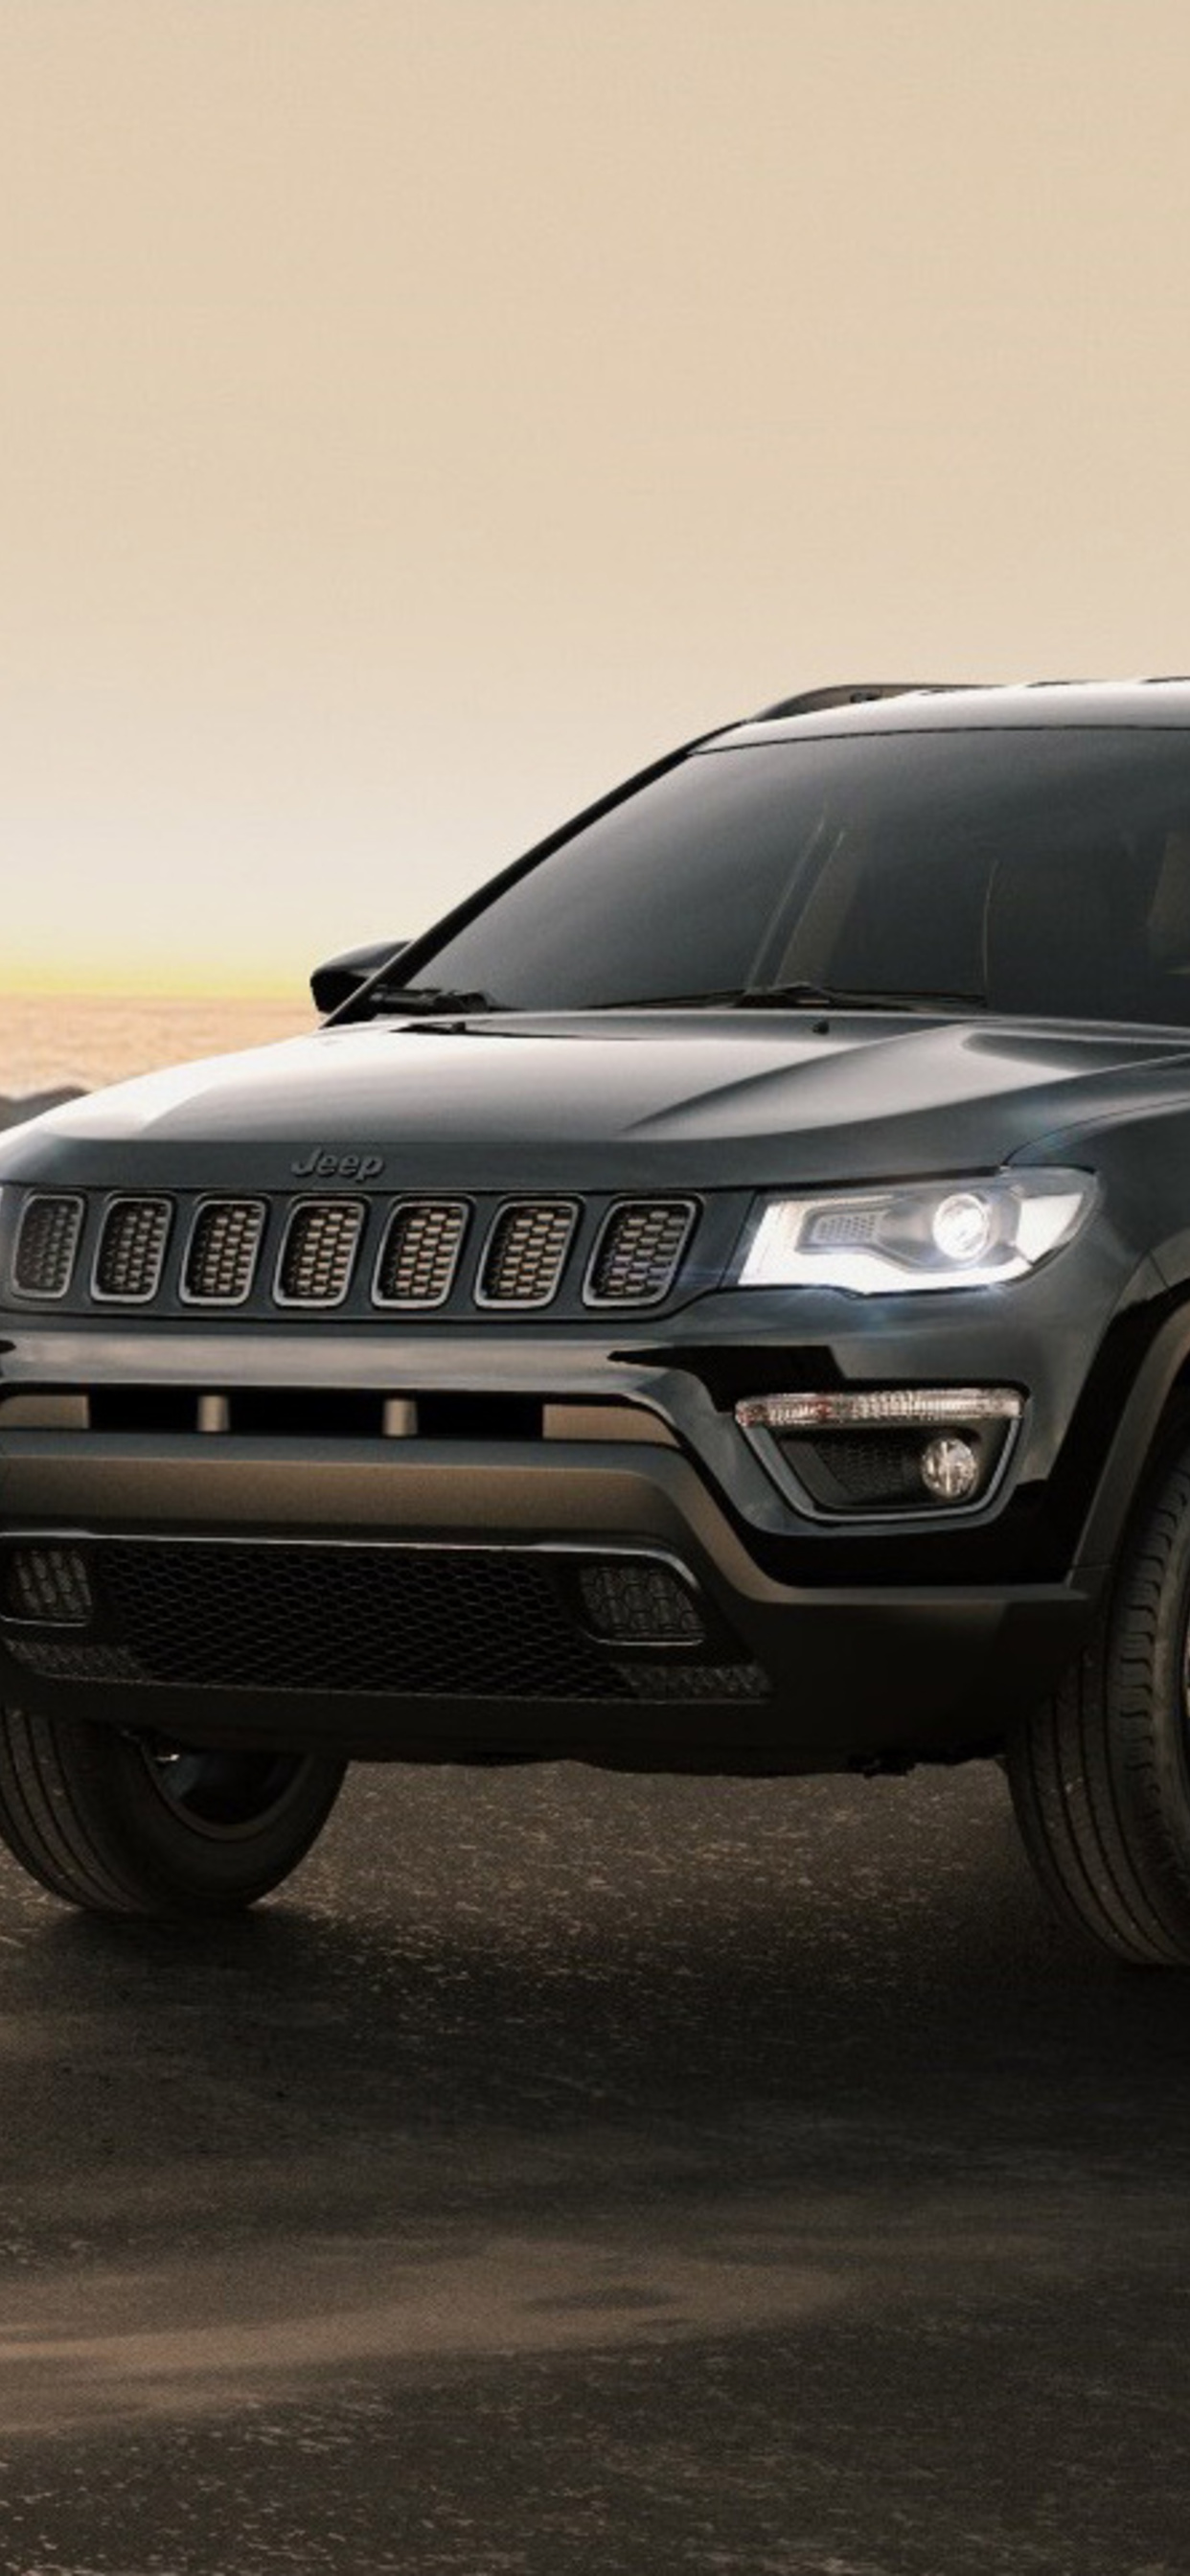 1242x2688 Jeep Compass Night Eagle 2017 Iphone Xs Max Hd 4k